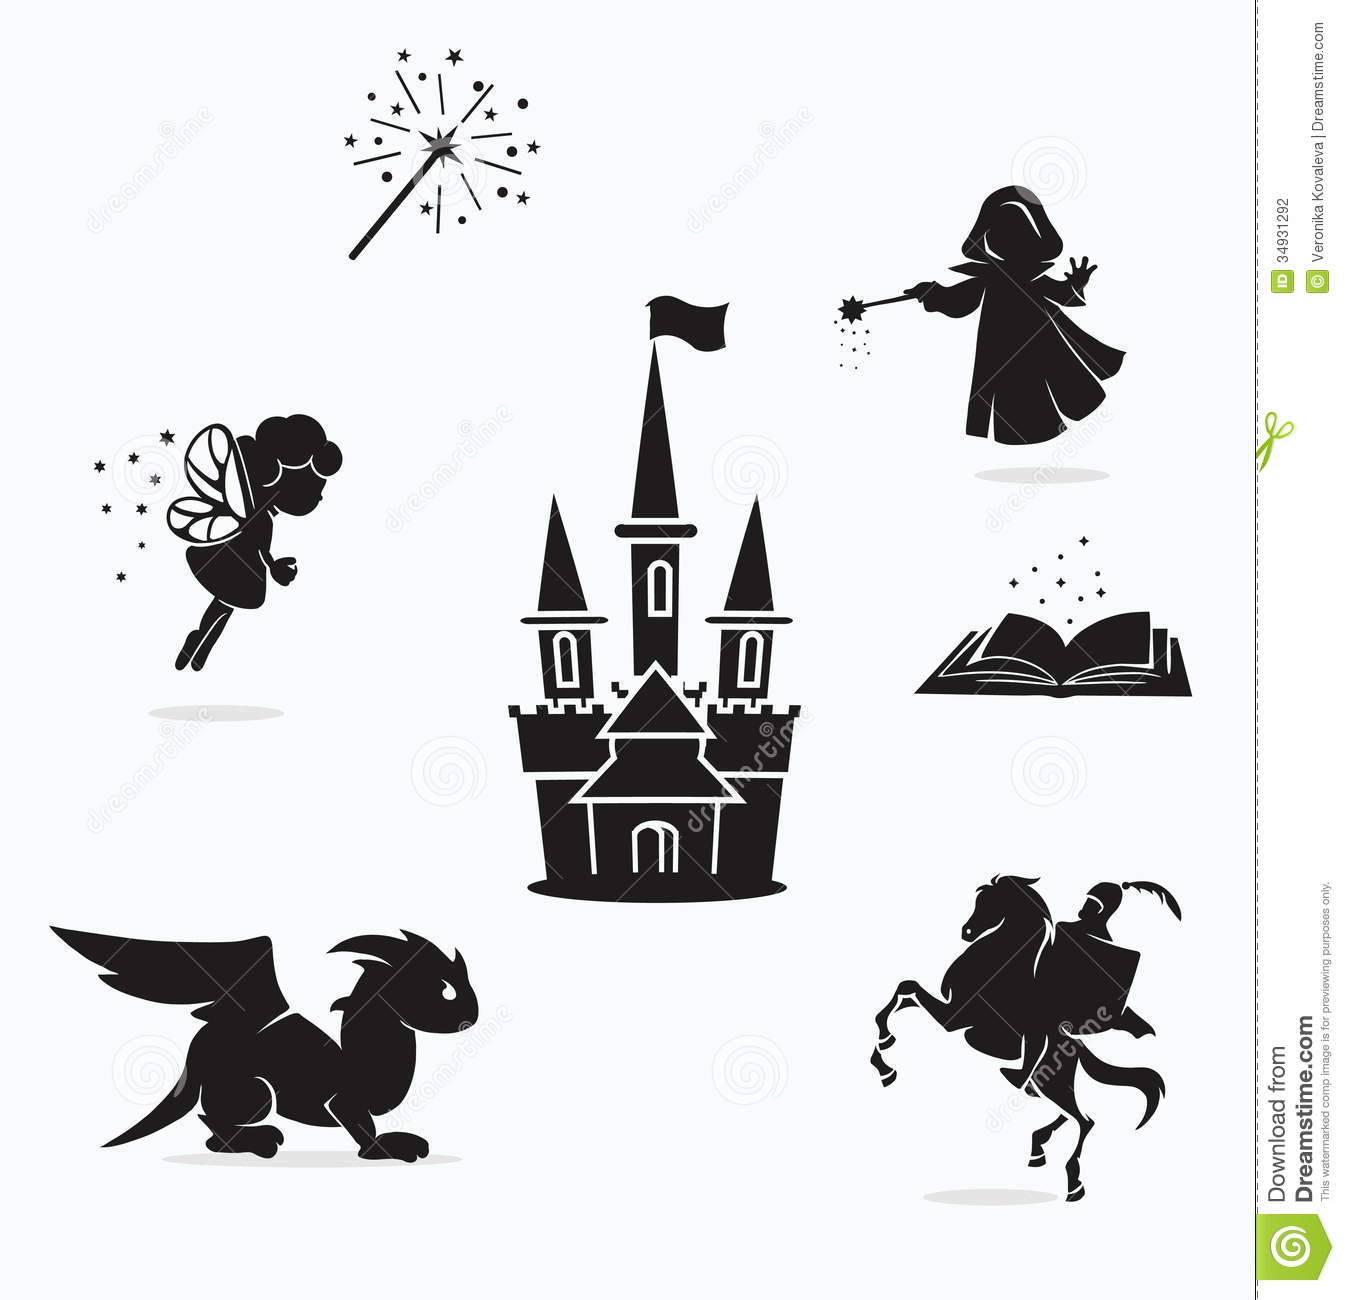 Chunjie 418696 also Dairy001PR Bw 141245 together with Pegasus furthermore Stock Illustration Head Donkey Asinus Black White Image51756770 as well Hastar. on horse silhouette stencil